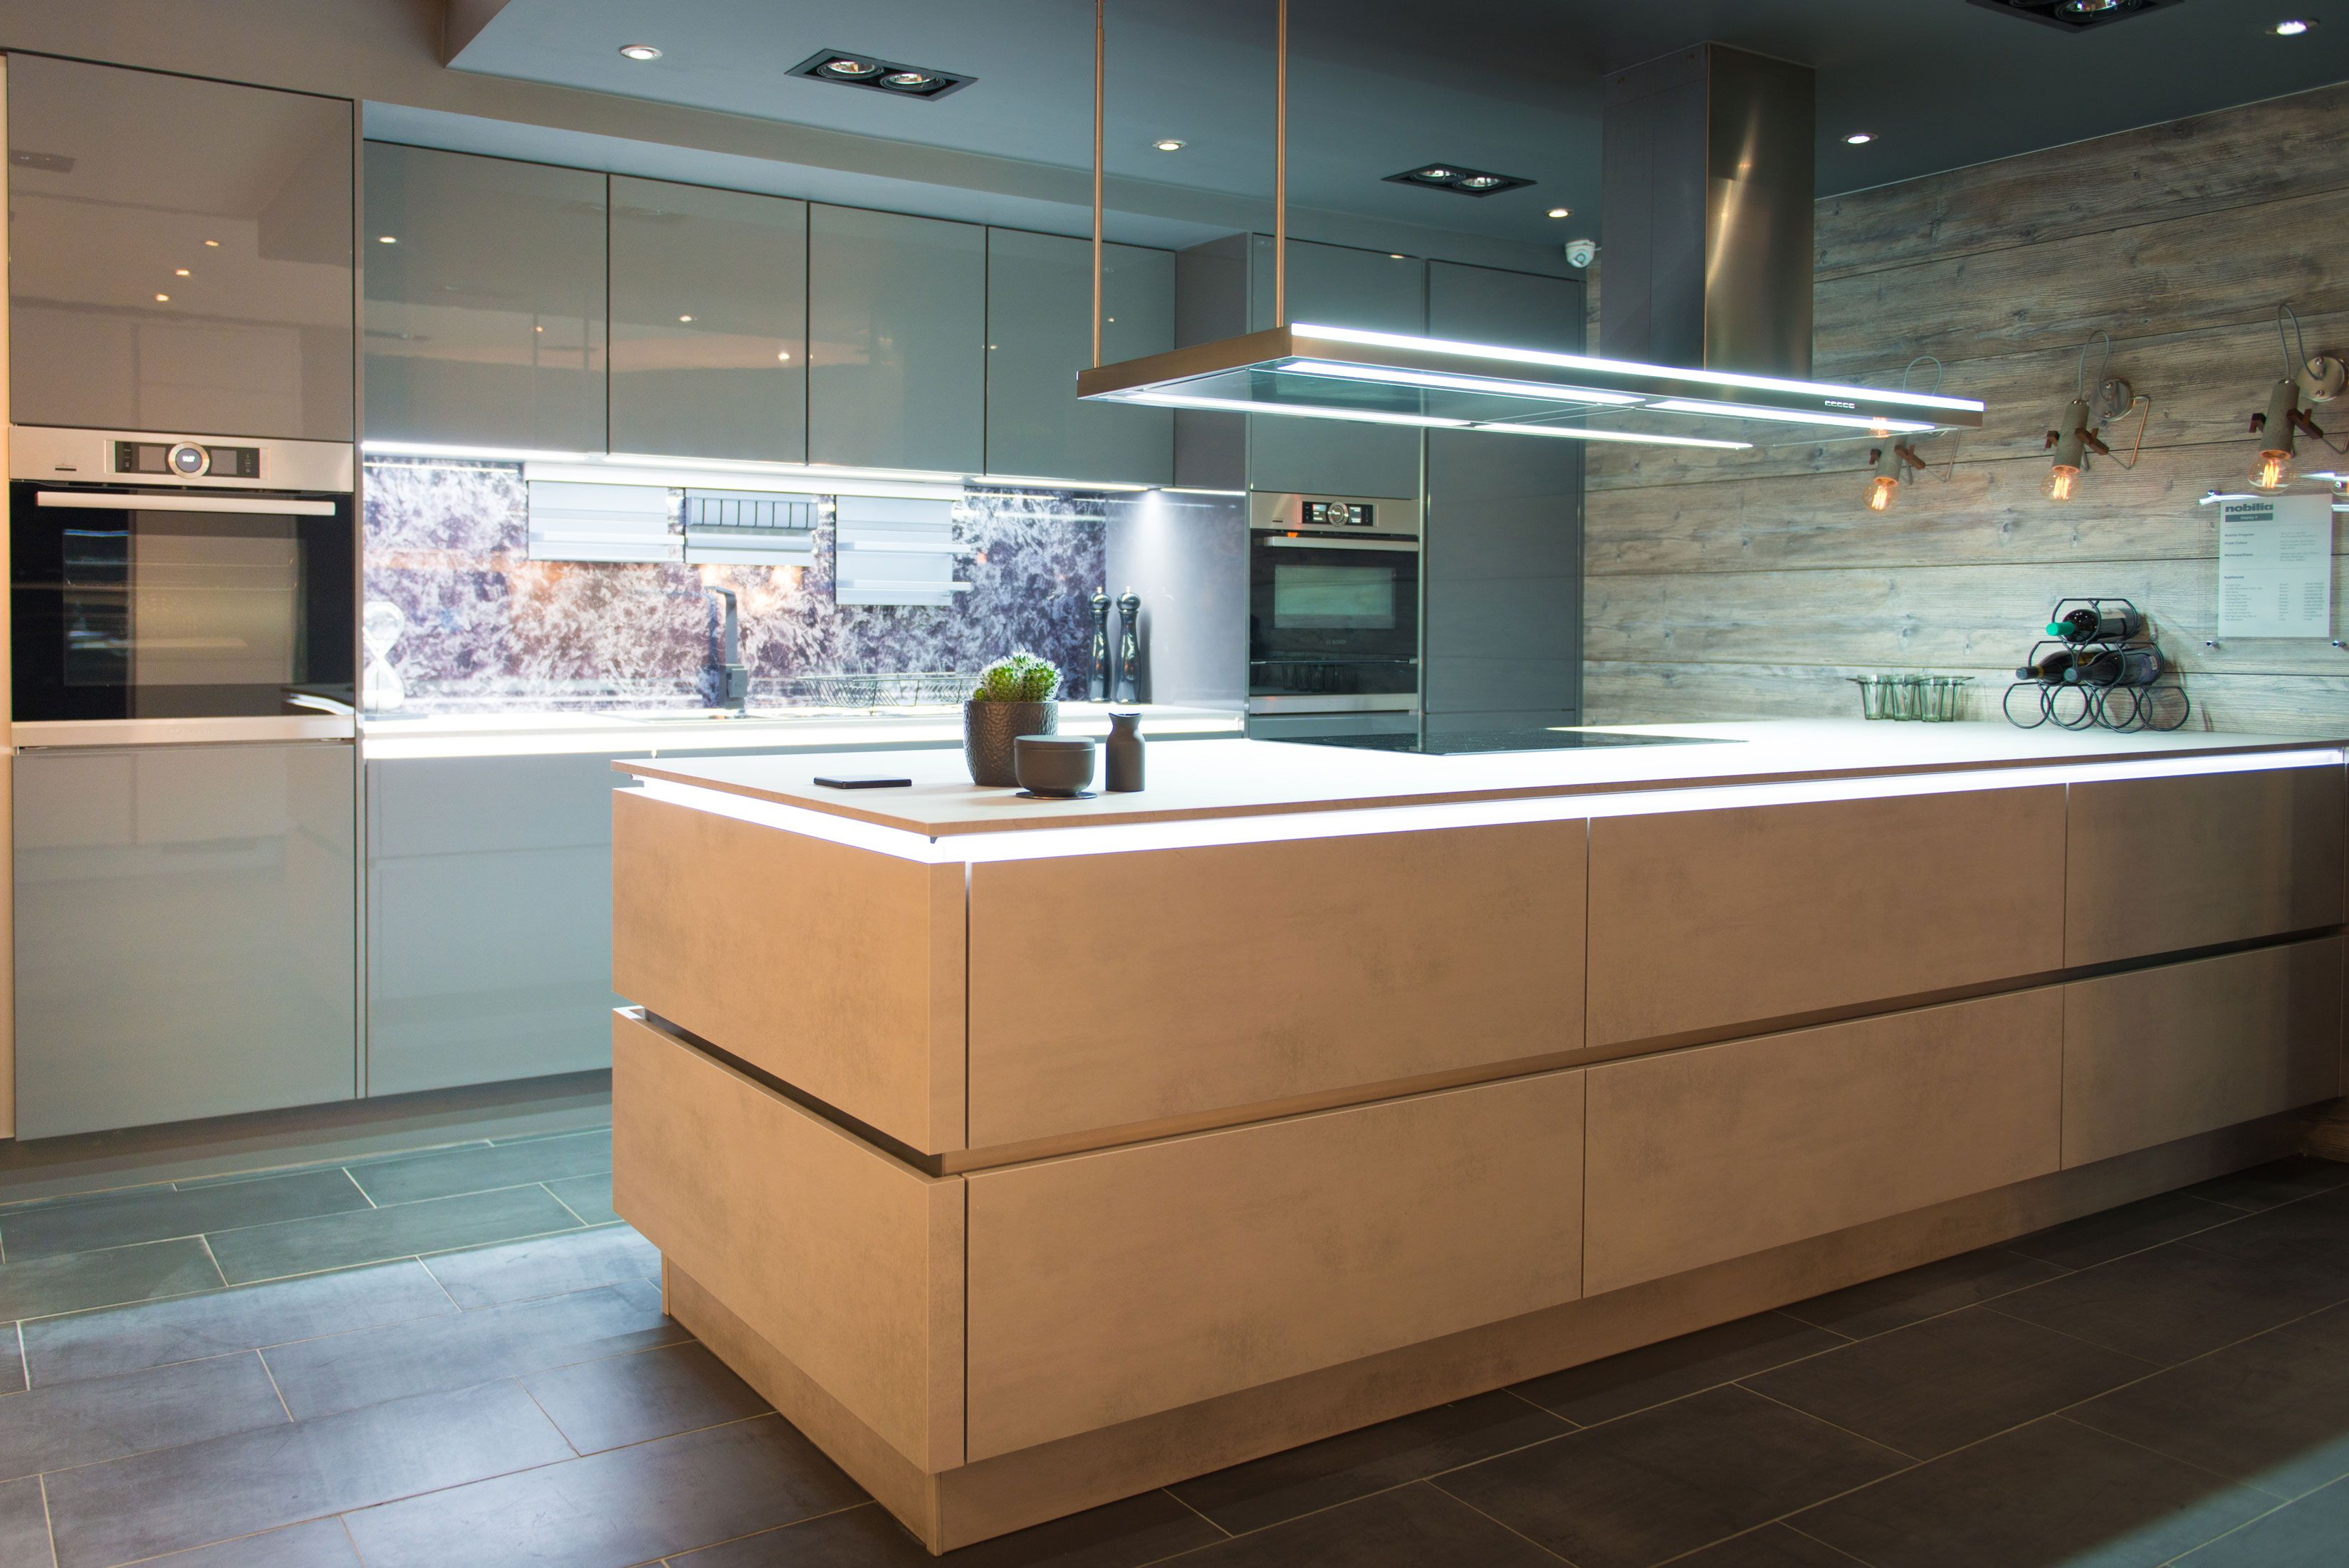 kitchen mood lighting. Mood Lighting And Modern Working In Perfect Harmony Kitchen Mood W